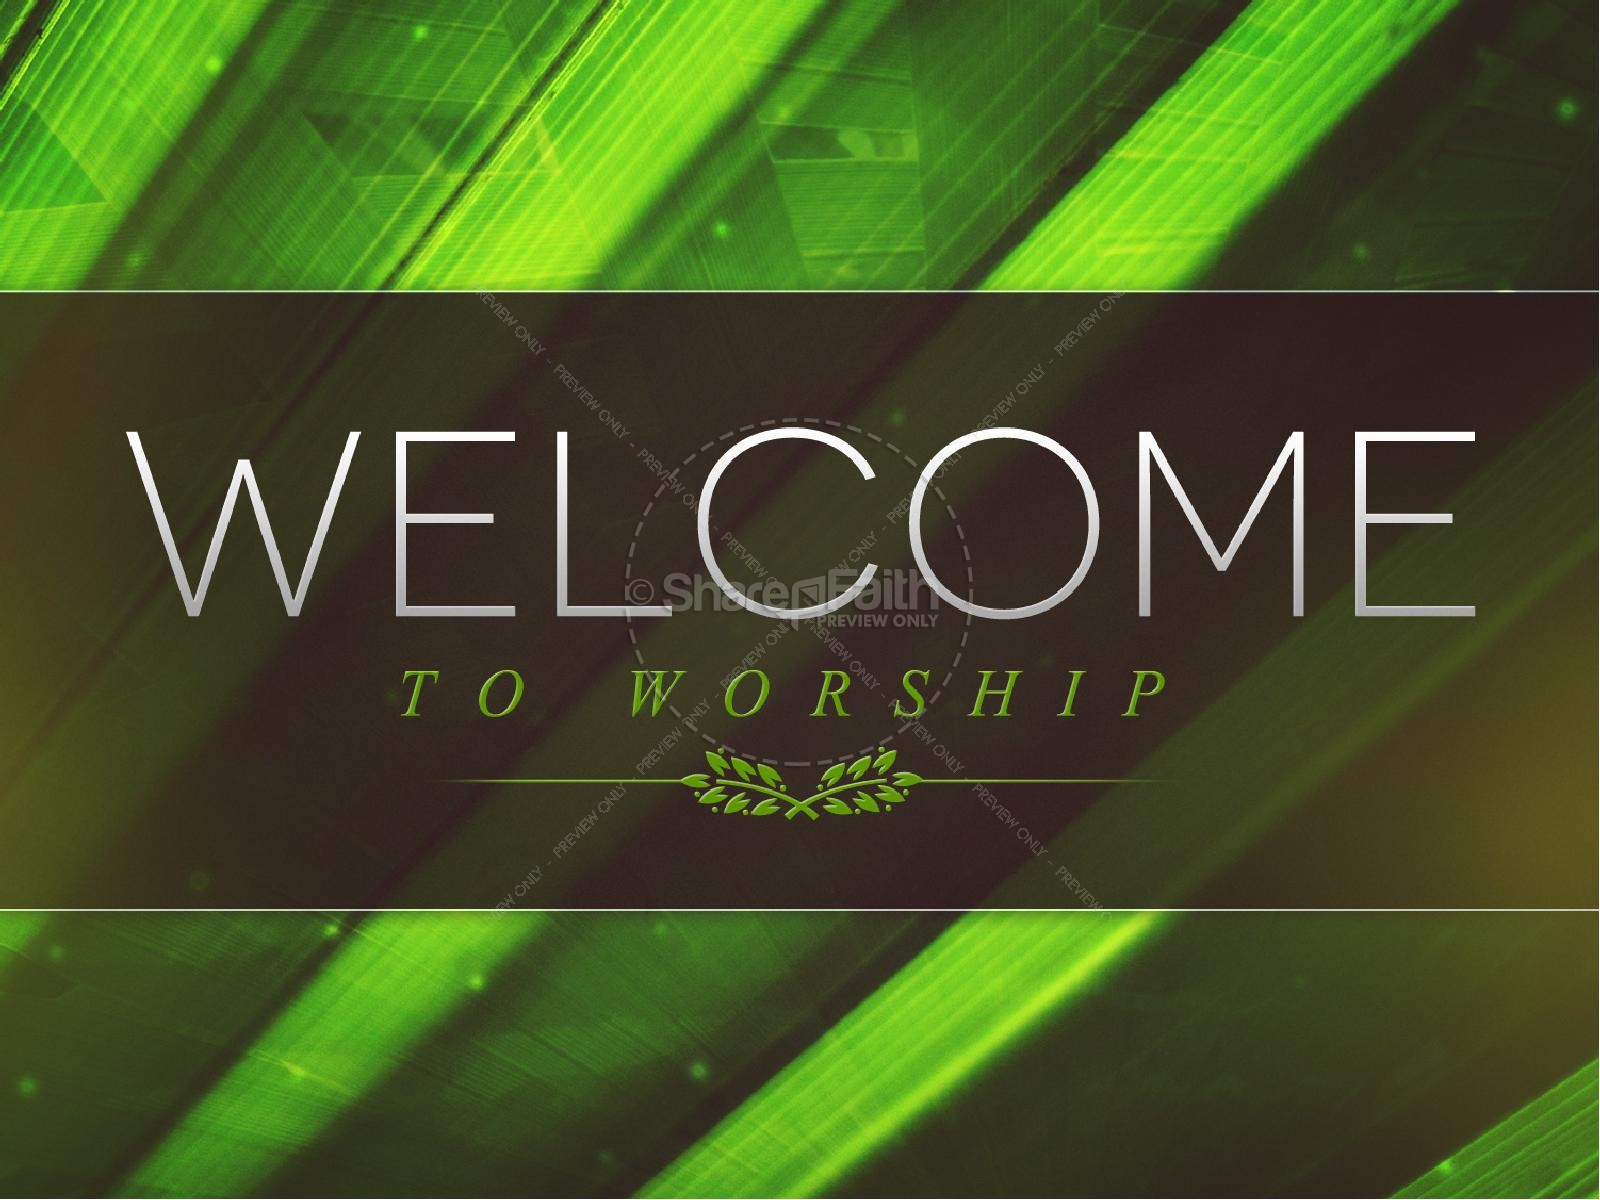 Palm Sunday Ministry Easter Graphics